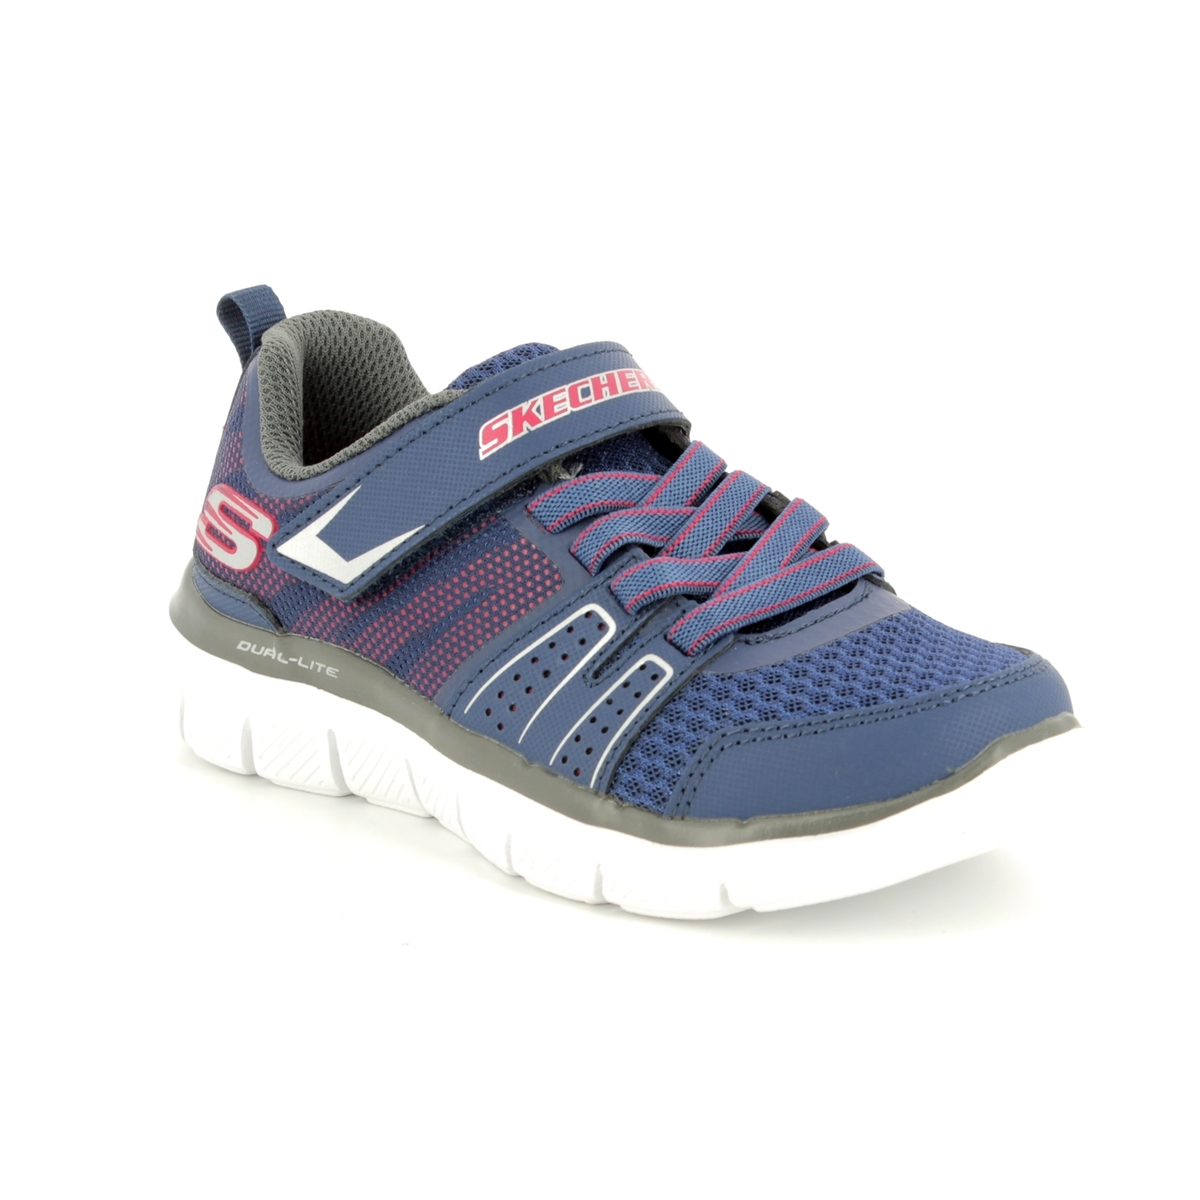 4caf62279e0 Skechers High Torque 97456 NVRD Navy-Red trainers